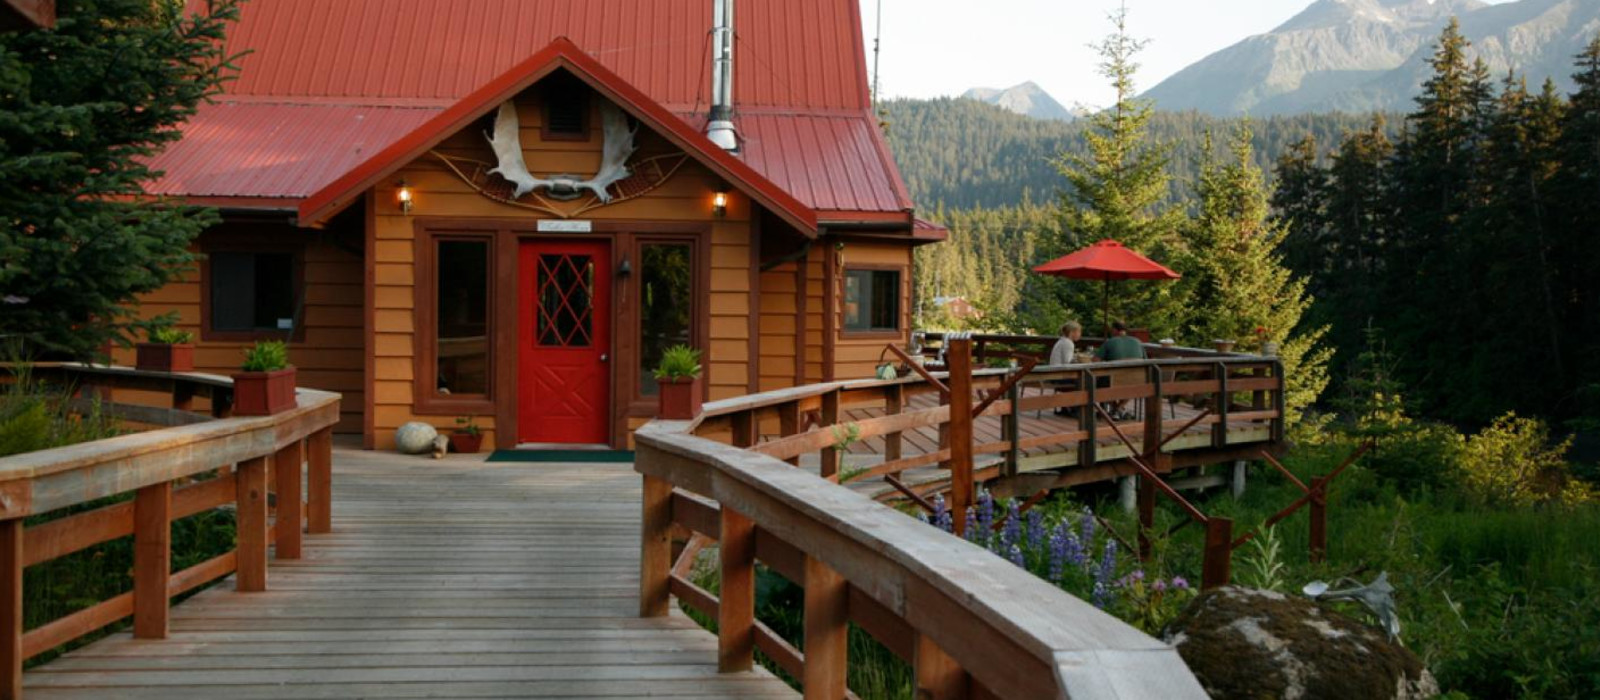 Hotel Tutka Bay Lodge Alaska